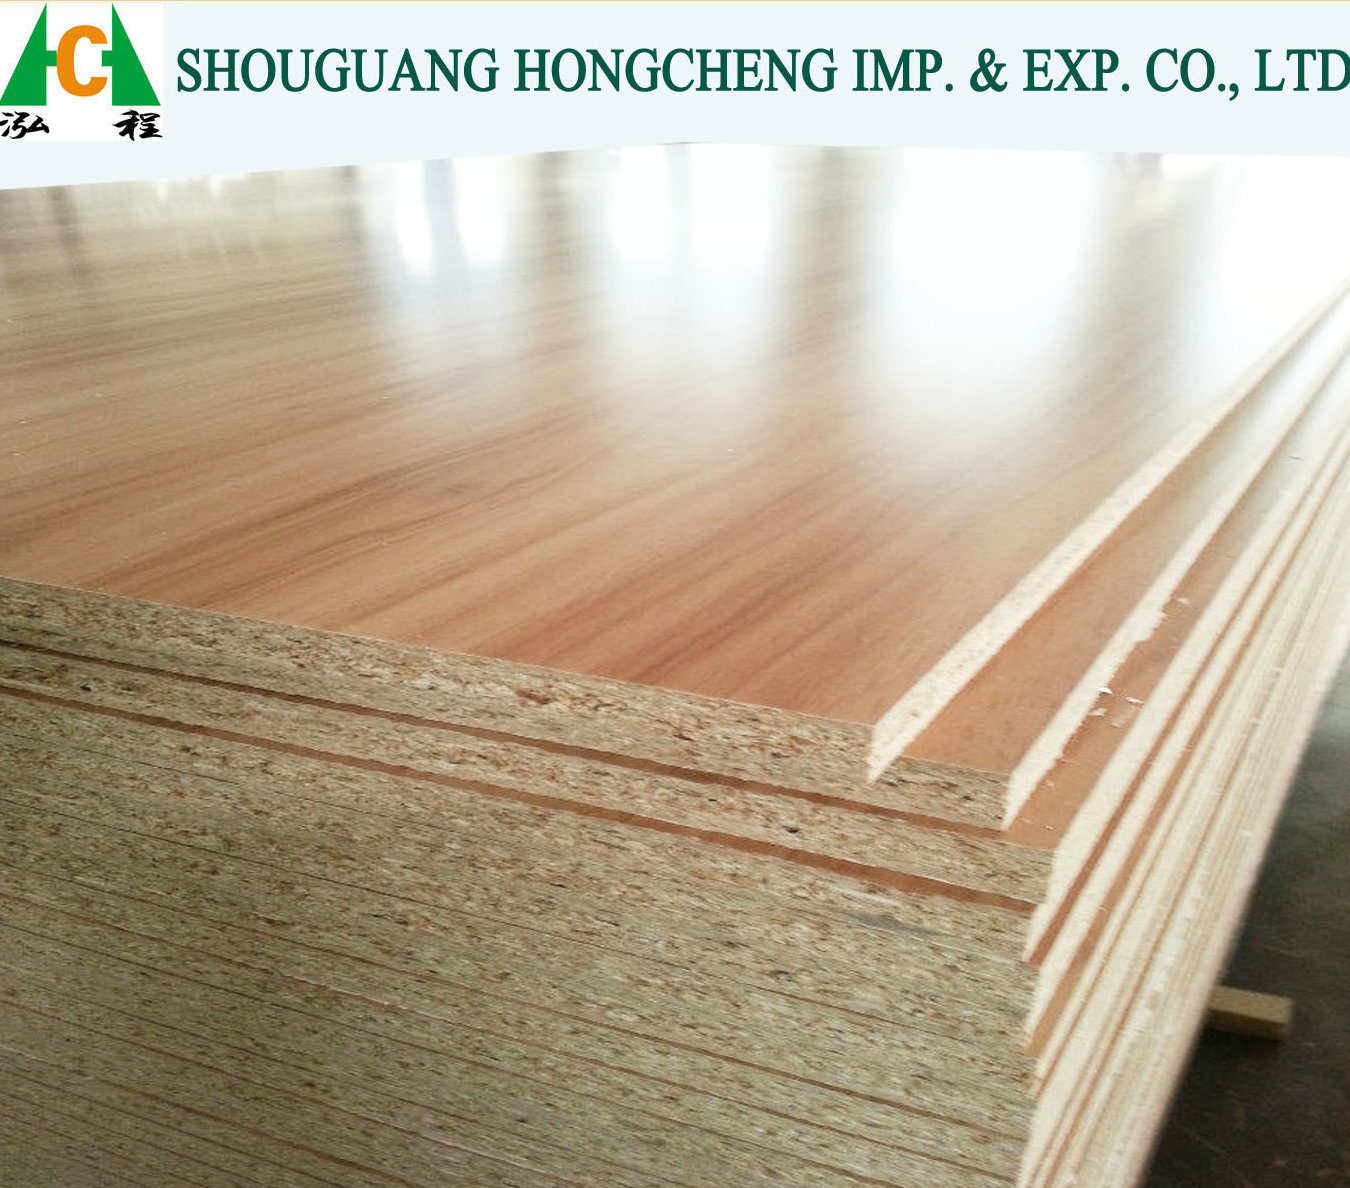 China 18mm E1 Grade Wooden Color Melamine Faced Particleboard For Construciton And Furniture Particle Board Raw